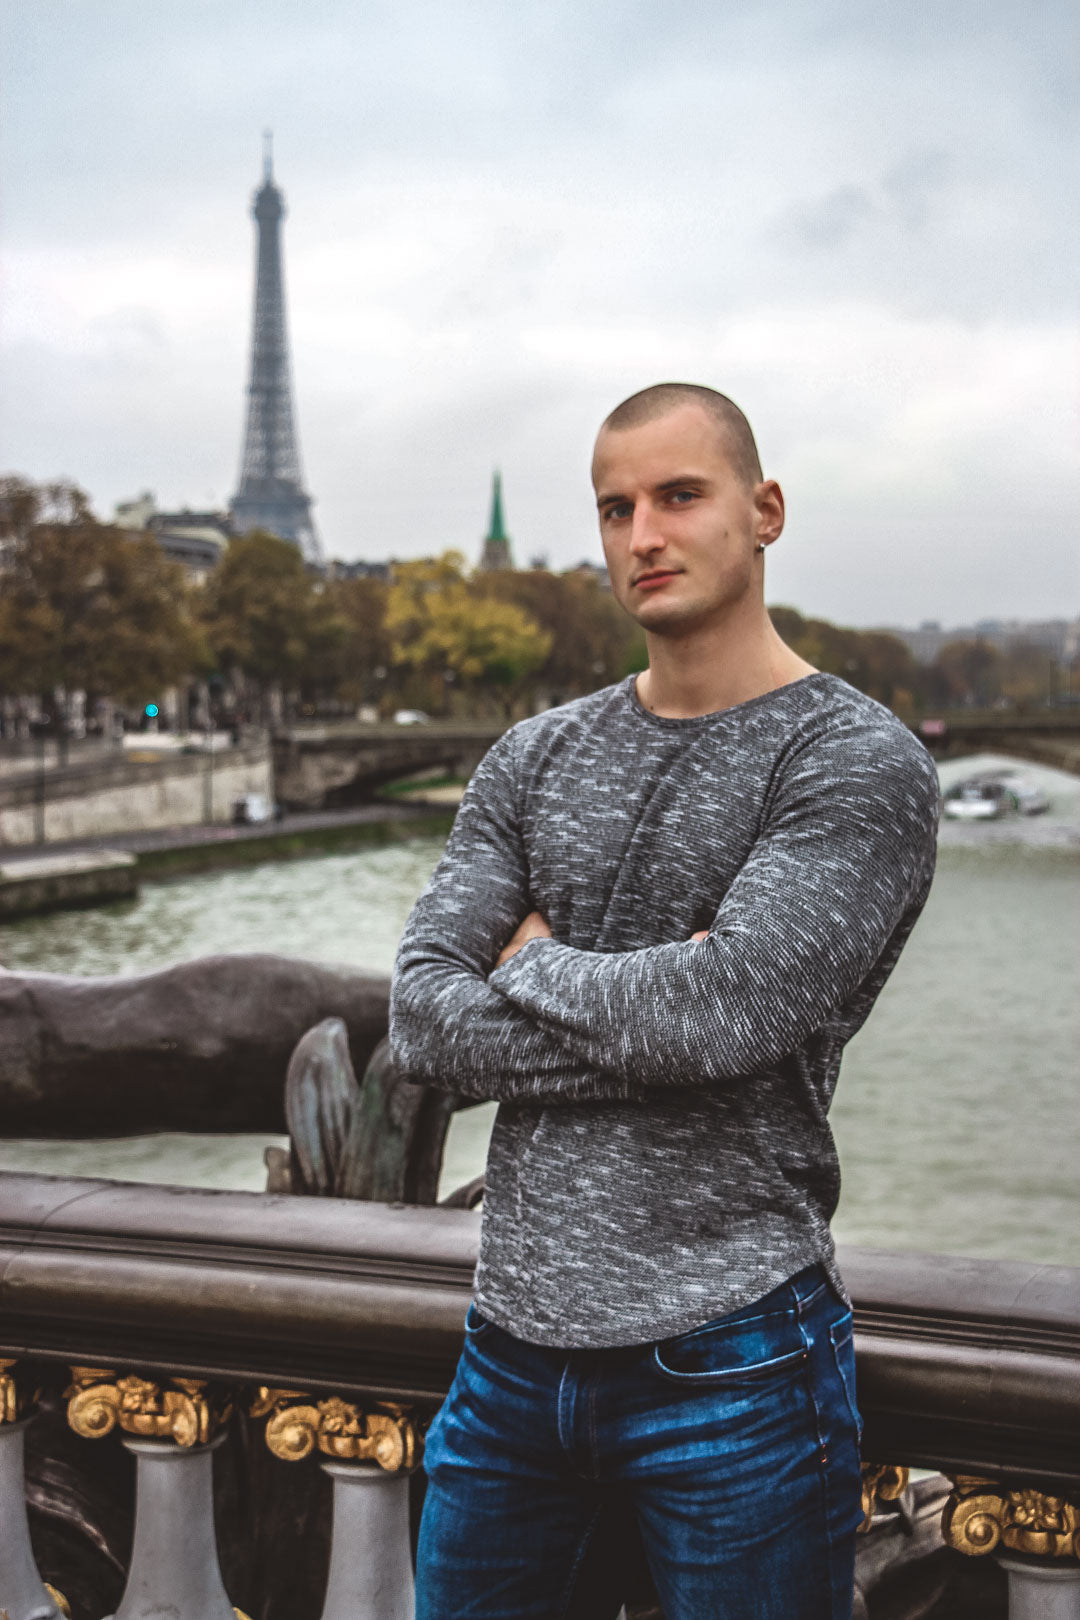 Muscular man with a gray top poses in front of the Eiffel tower